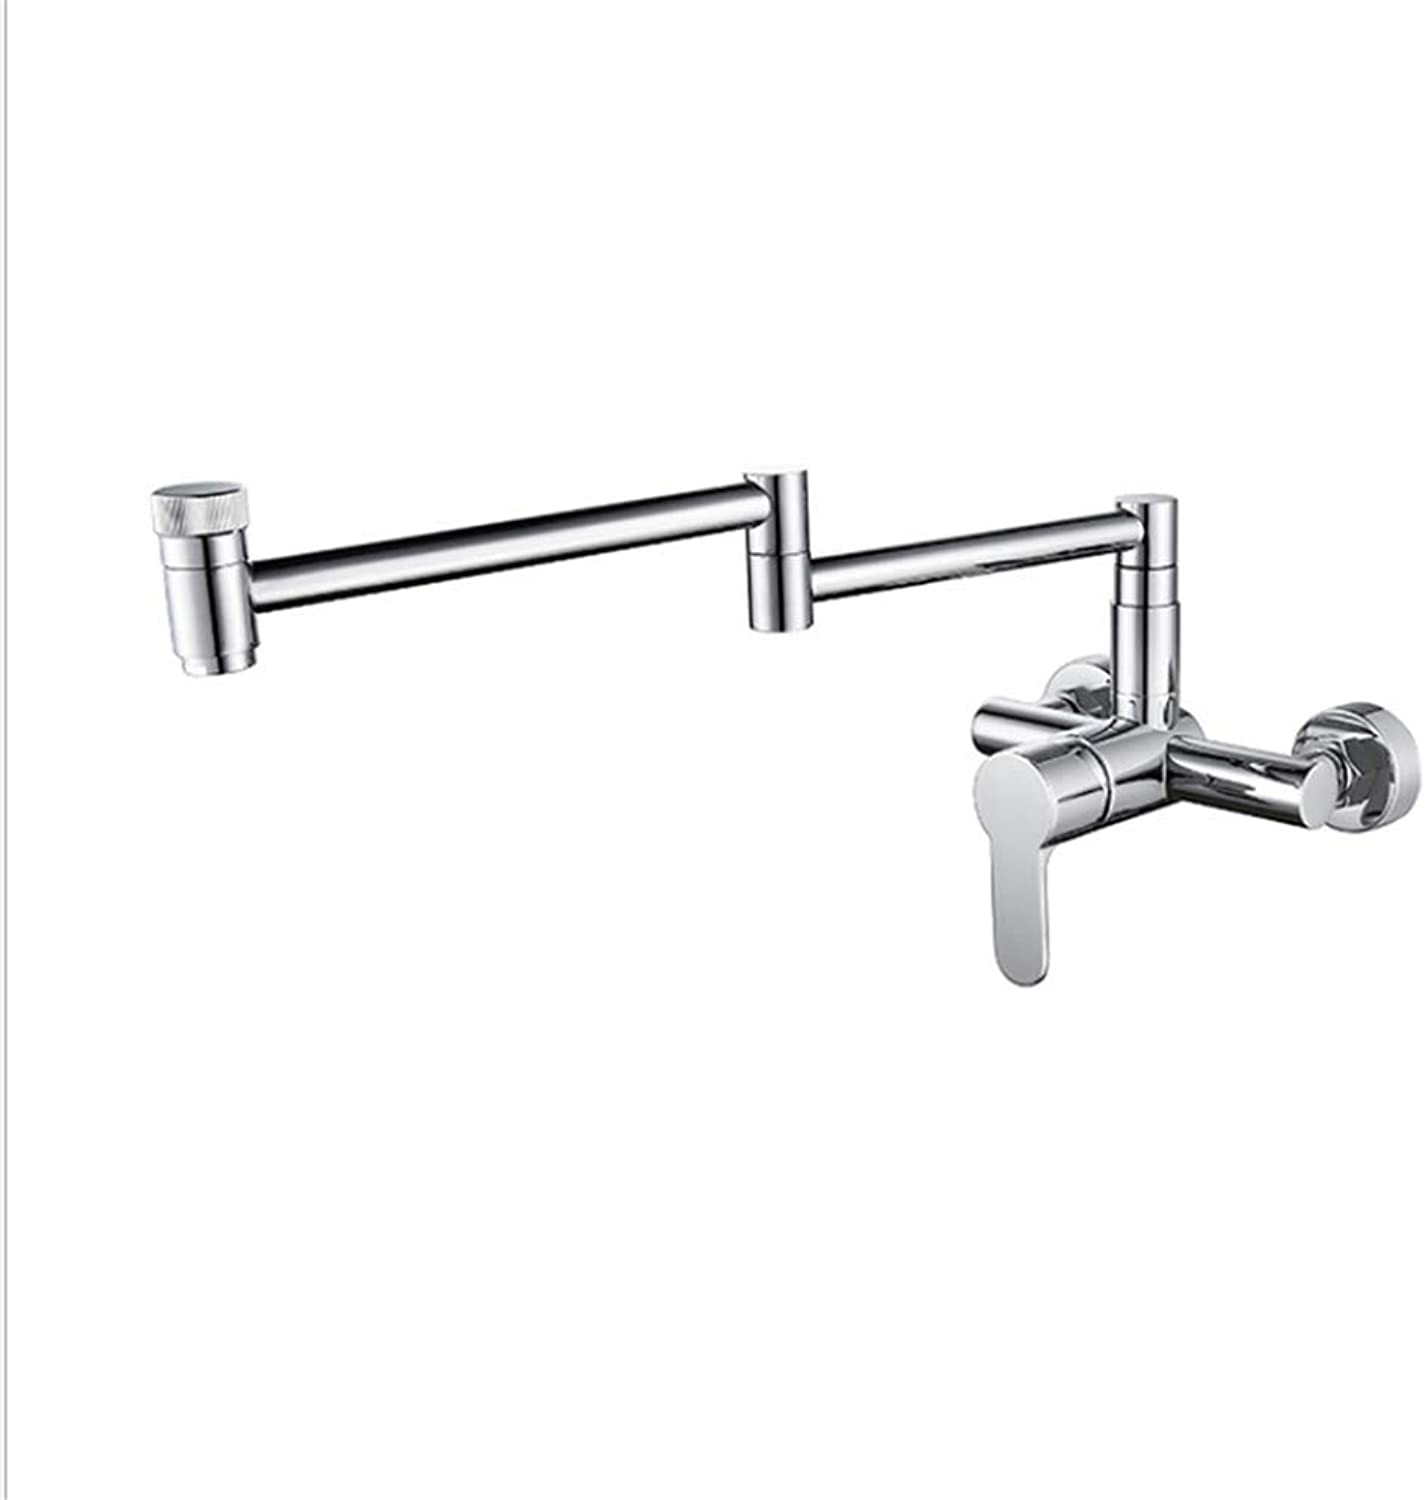 Basin Faucetcopper-Plated Chrome Wall-Mounted Faucet Foldable Universal redary Kitchen Sink Faucet Washing Pool Mop Pool Faucet